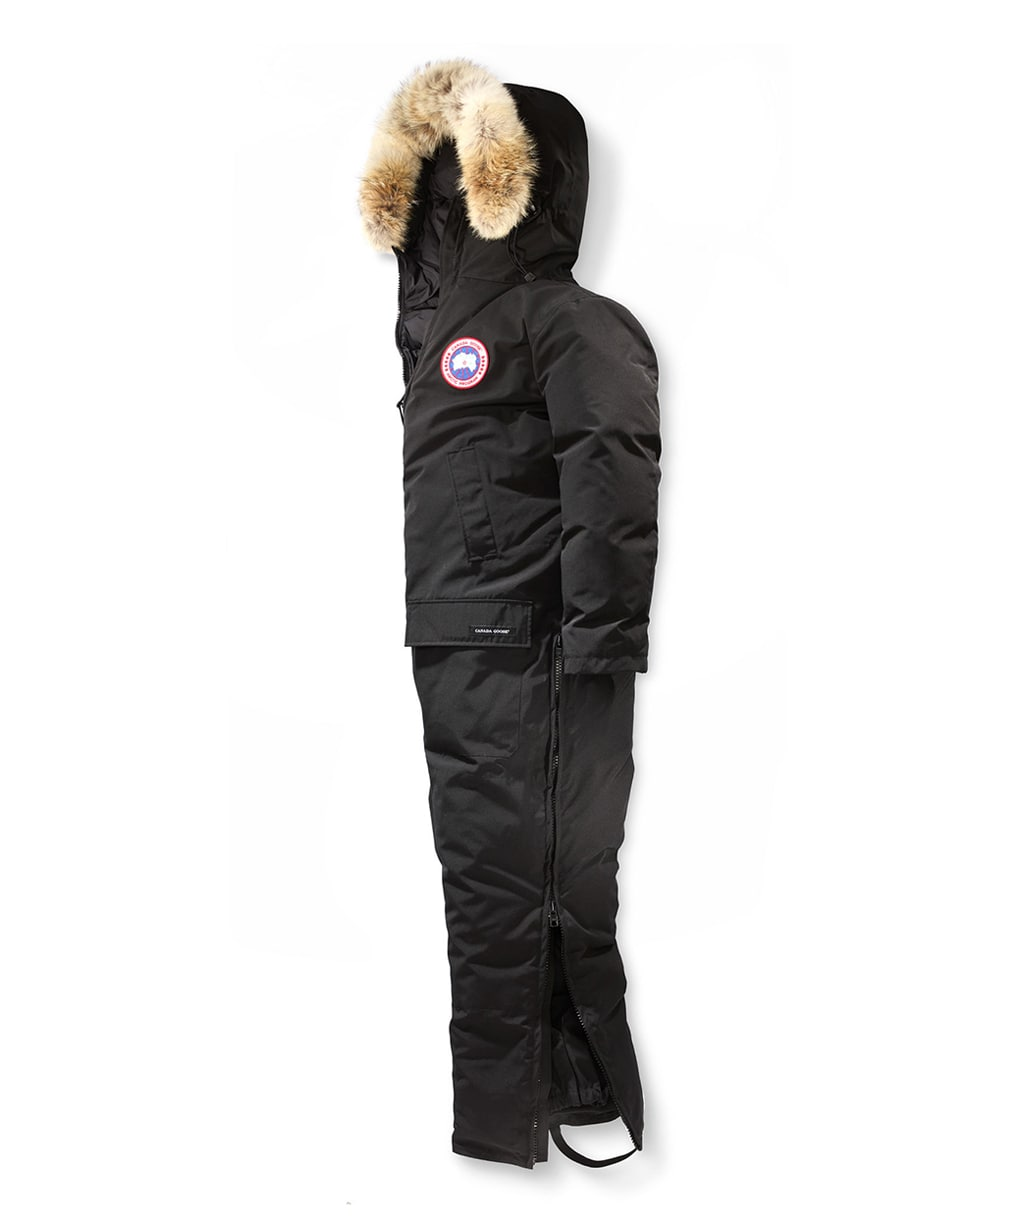 ARCTIC RIGGER OVERALL